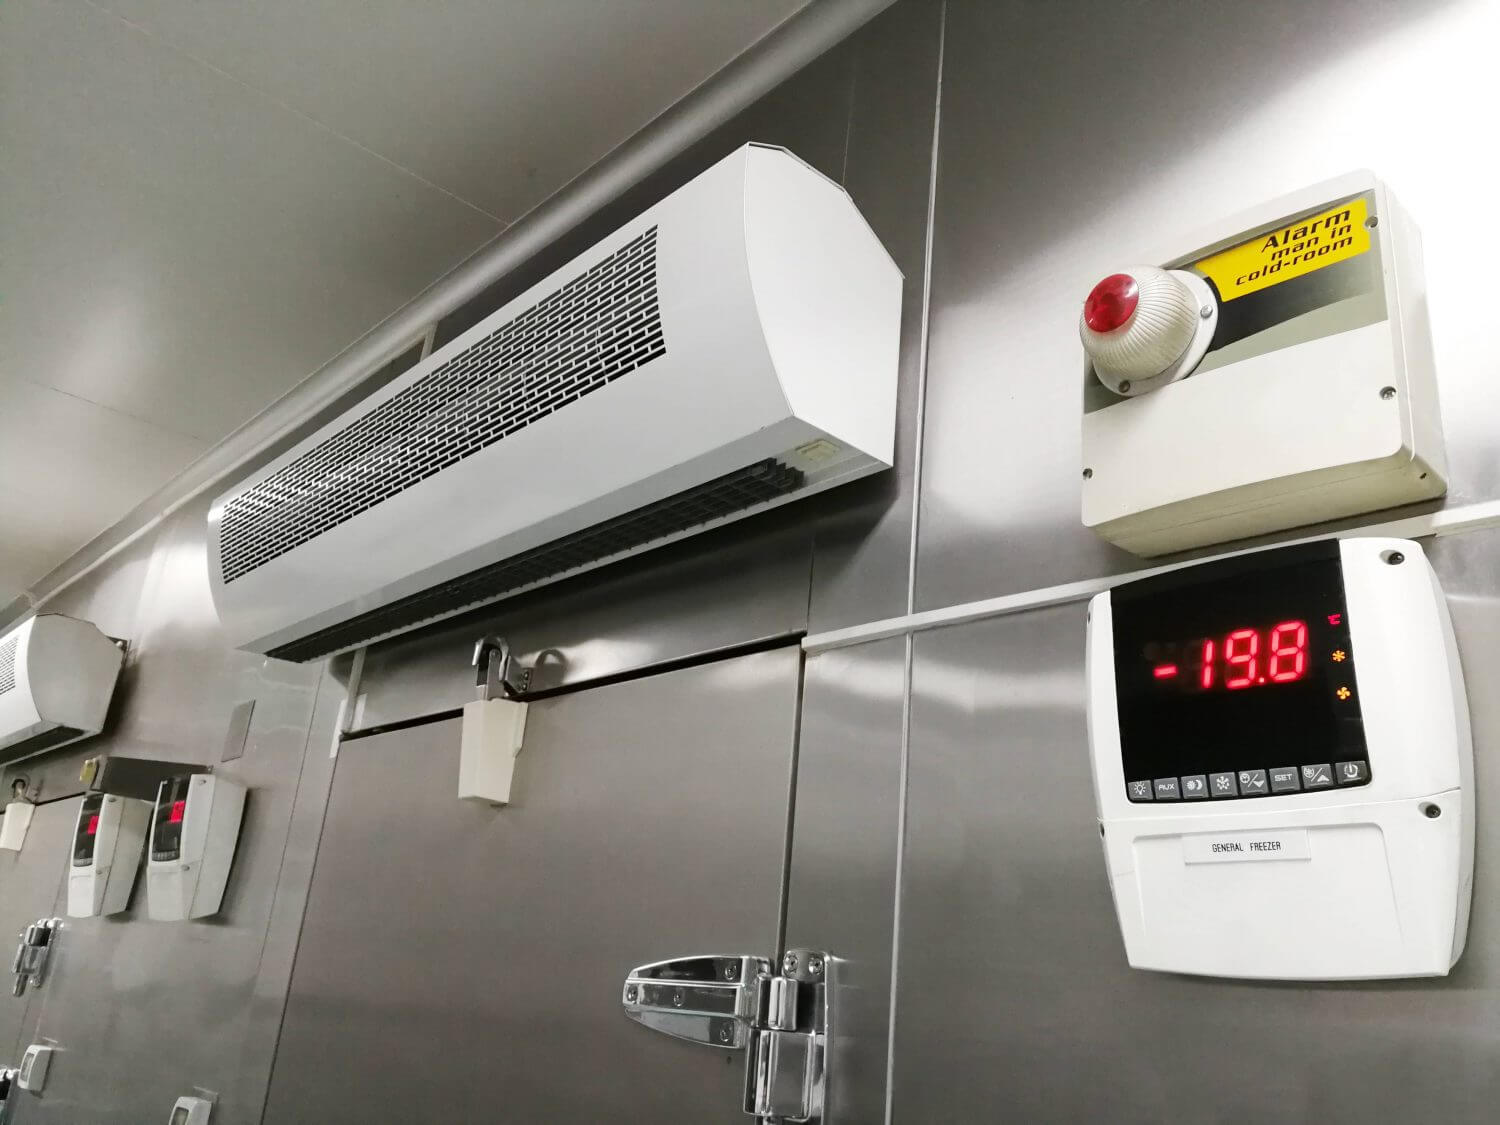 temperature control room with in warehouse to store fresh foods and fruits